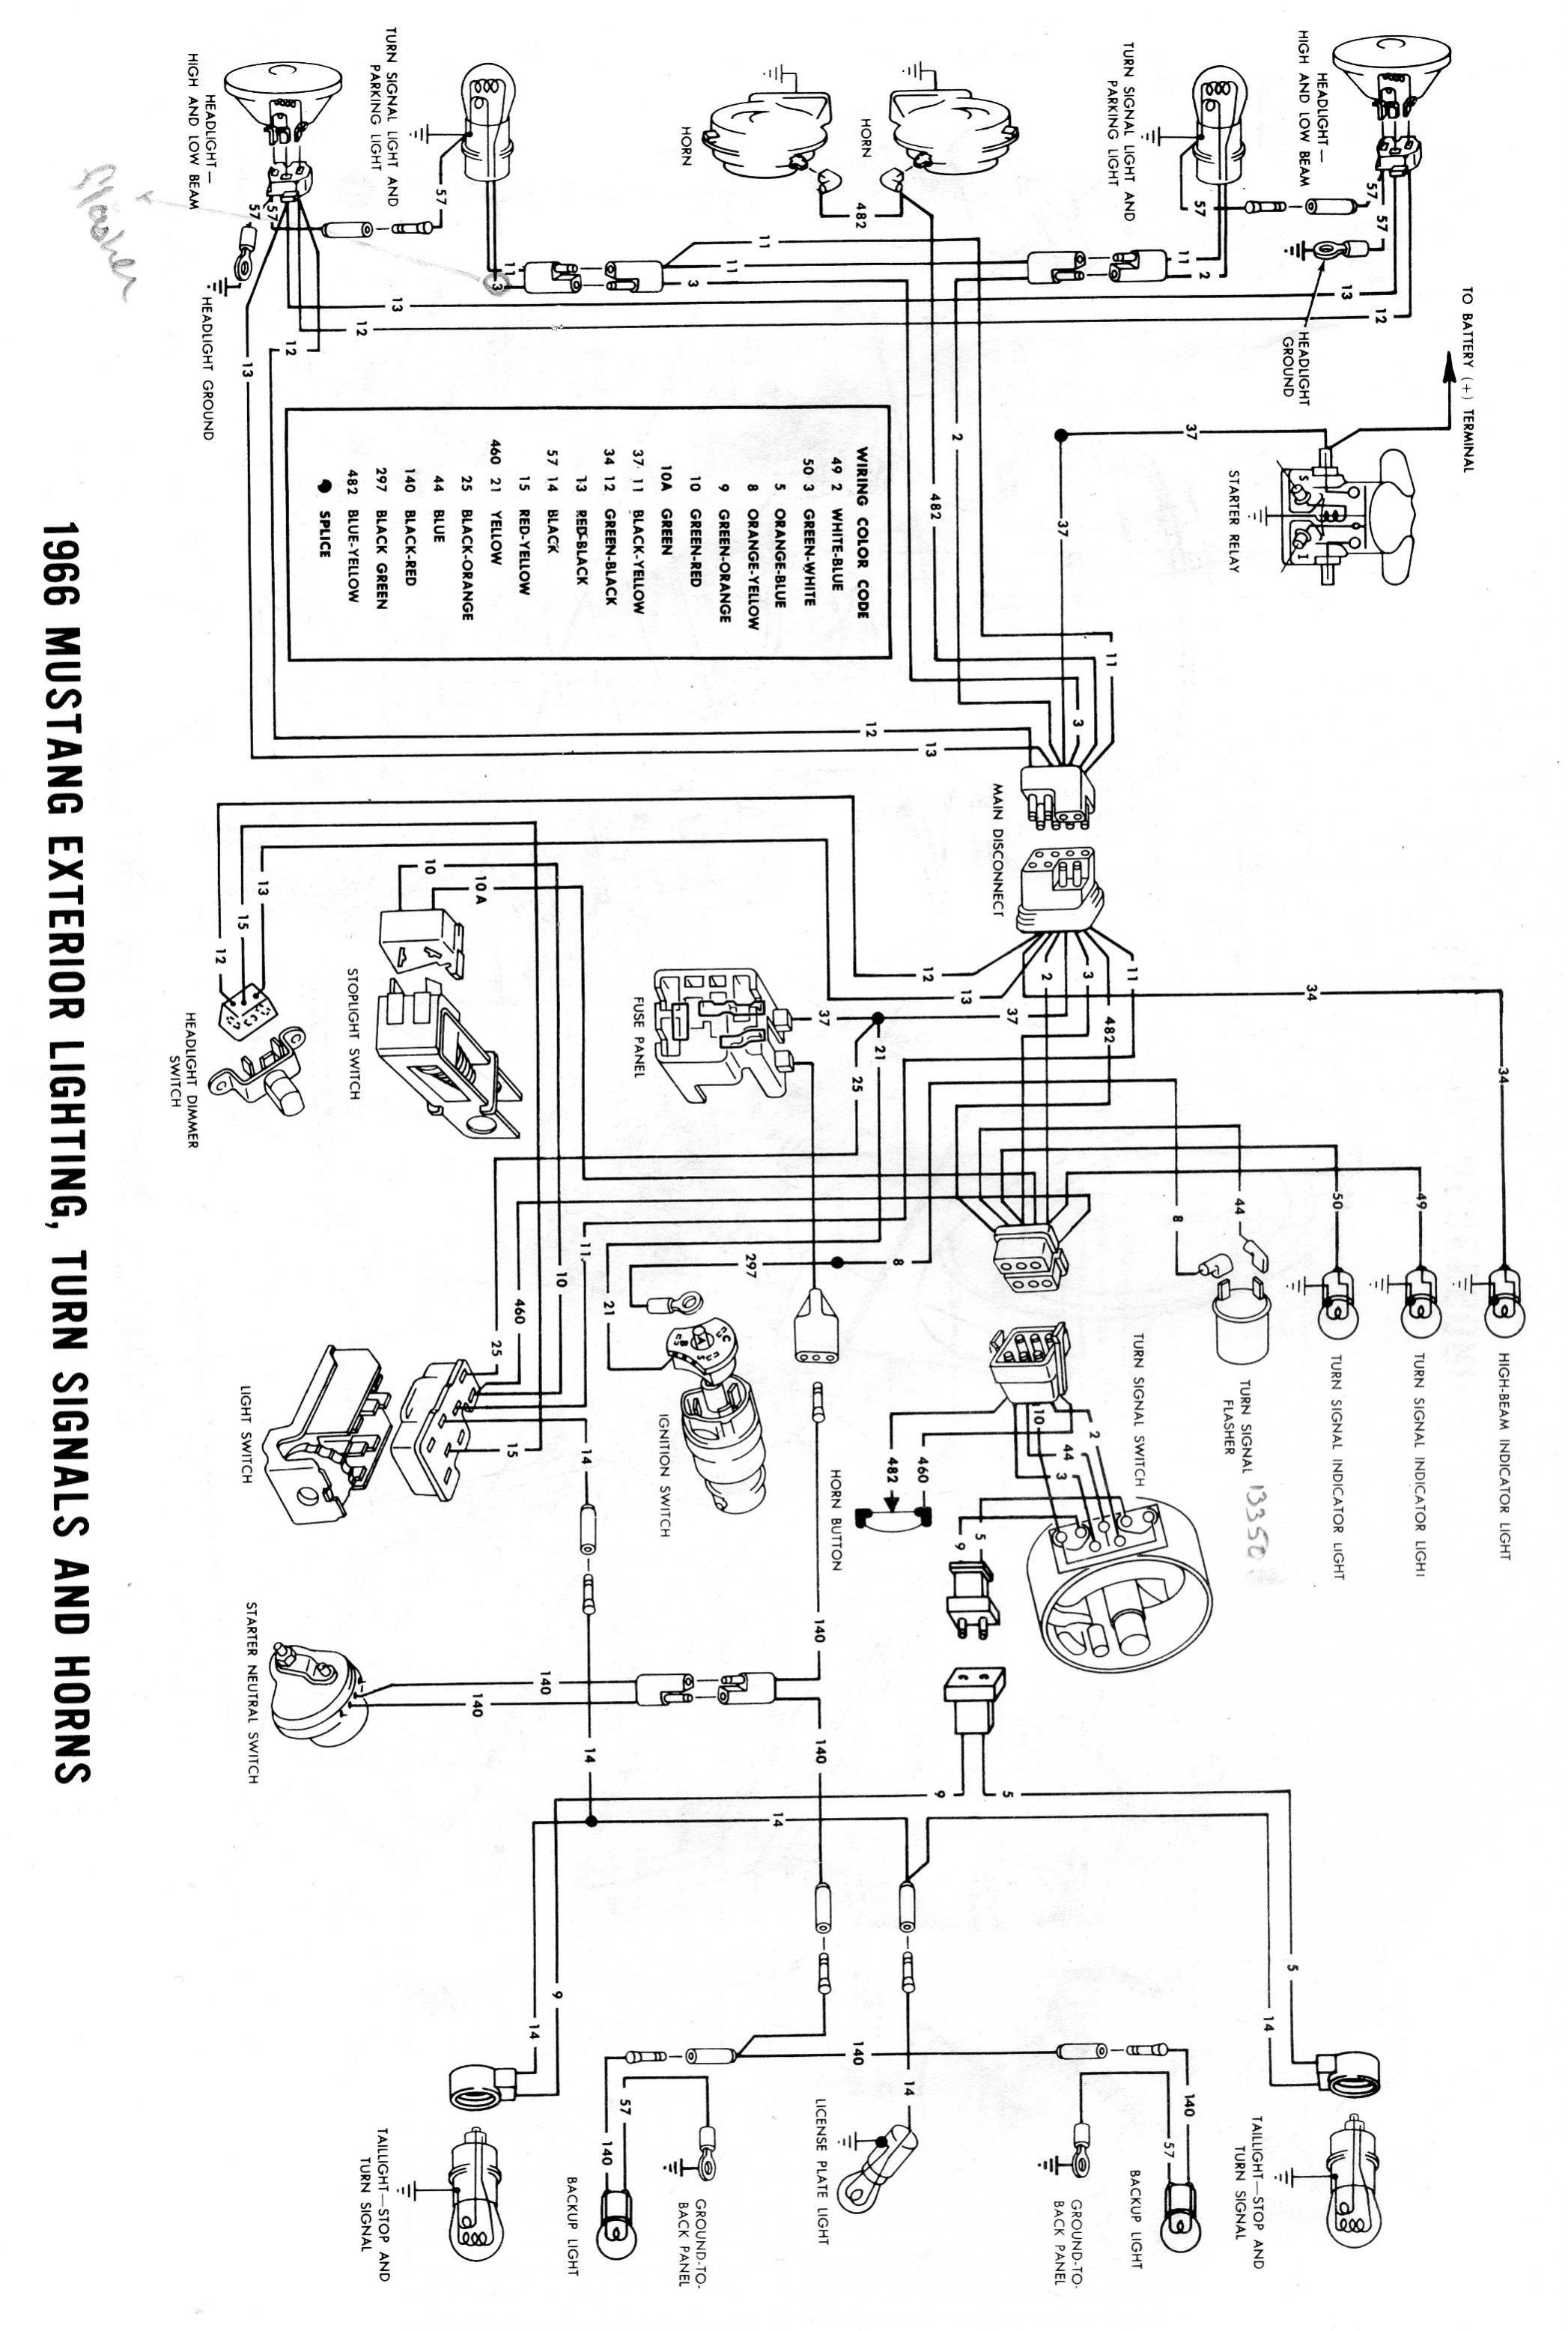 1967 Mustang Turn Signal Wiring Diagram - Hydro Air Wiring Diagram -  audi-a3.nescafe.jeanjaures37.fr | Turn Signal Wiring Diagram For 1966 Mustang |  | Wiring Diagram Resource